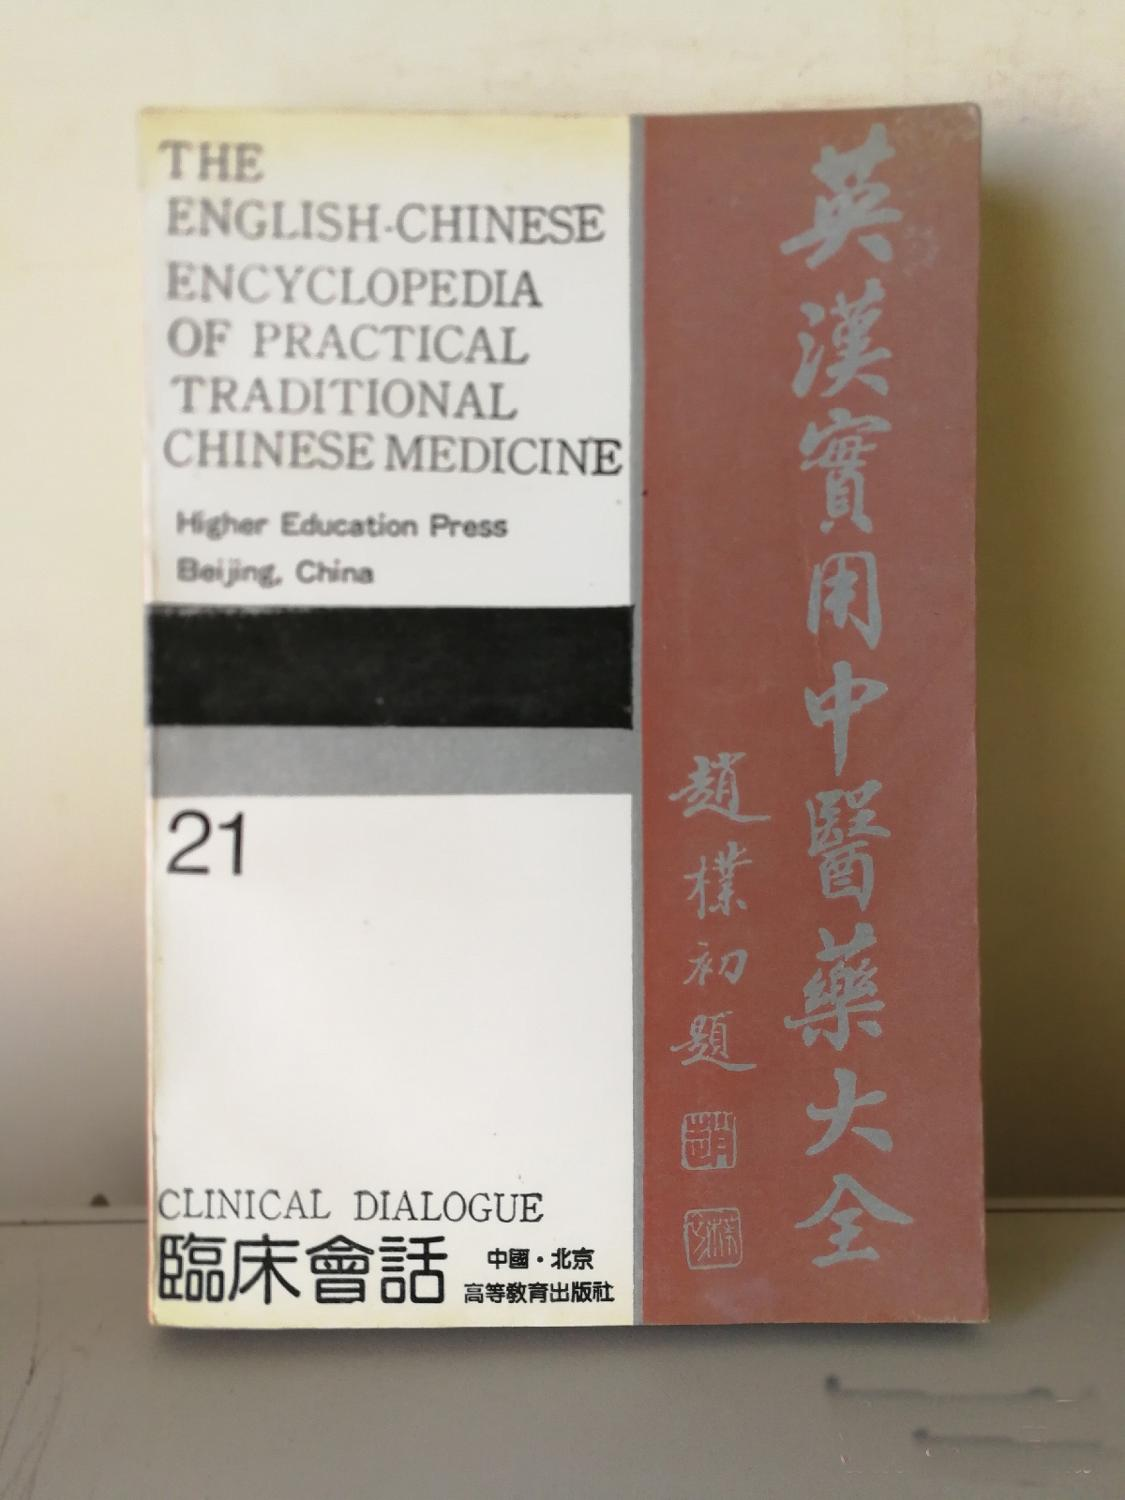 Used Bilingual Chinese & English Encyclopaedia Series Book 21Clinical Conversation Medical Textbook